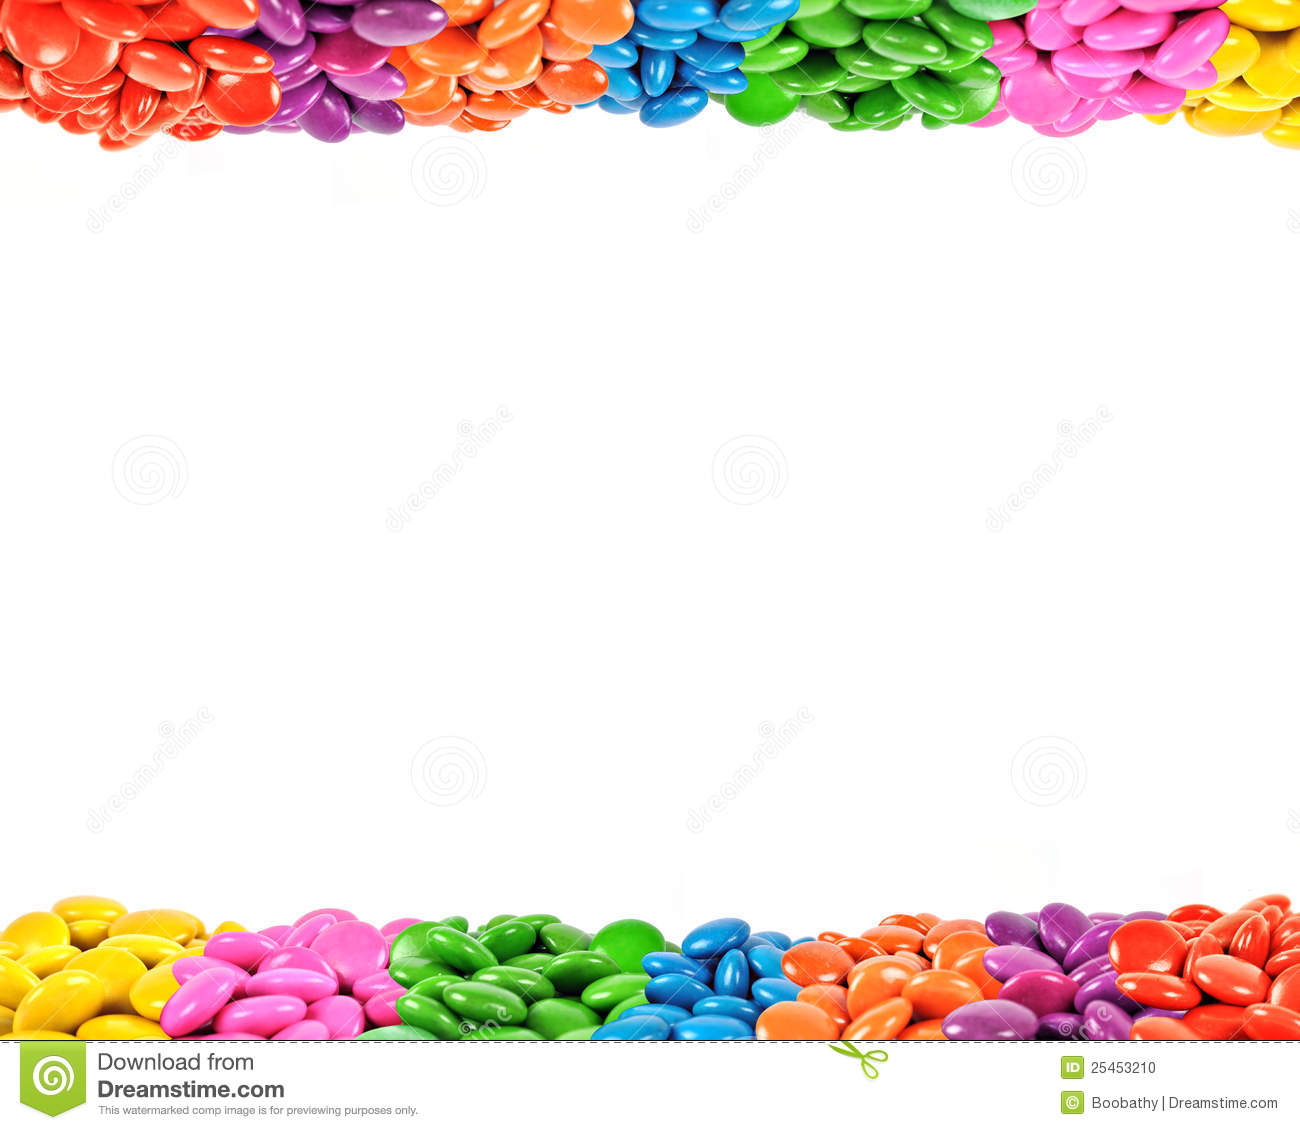 Colorful Candy Frame Stock Photo - Image: 25453210